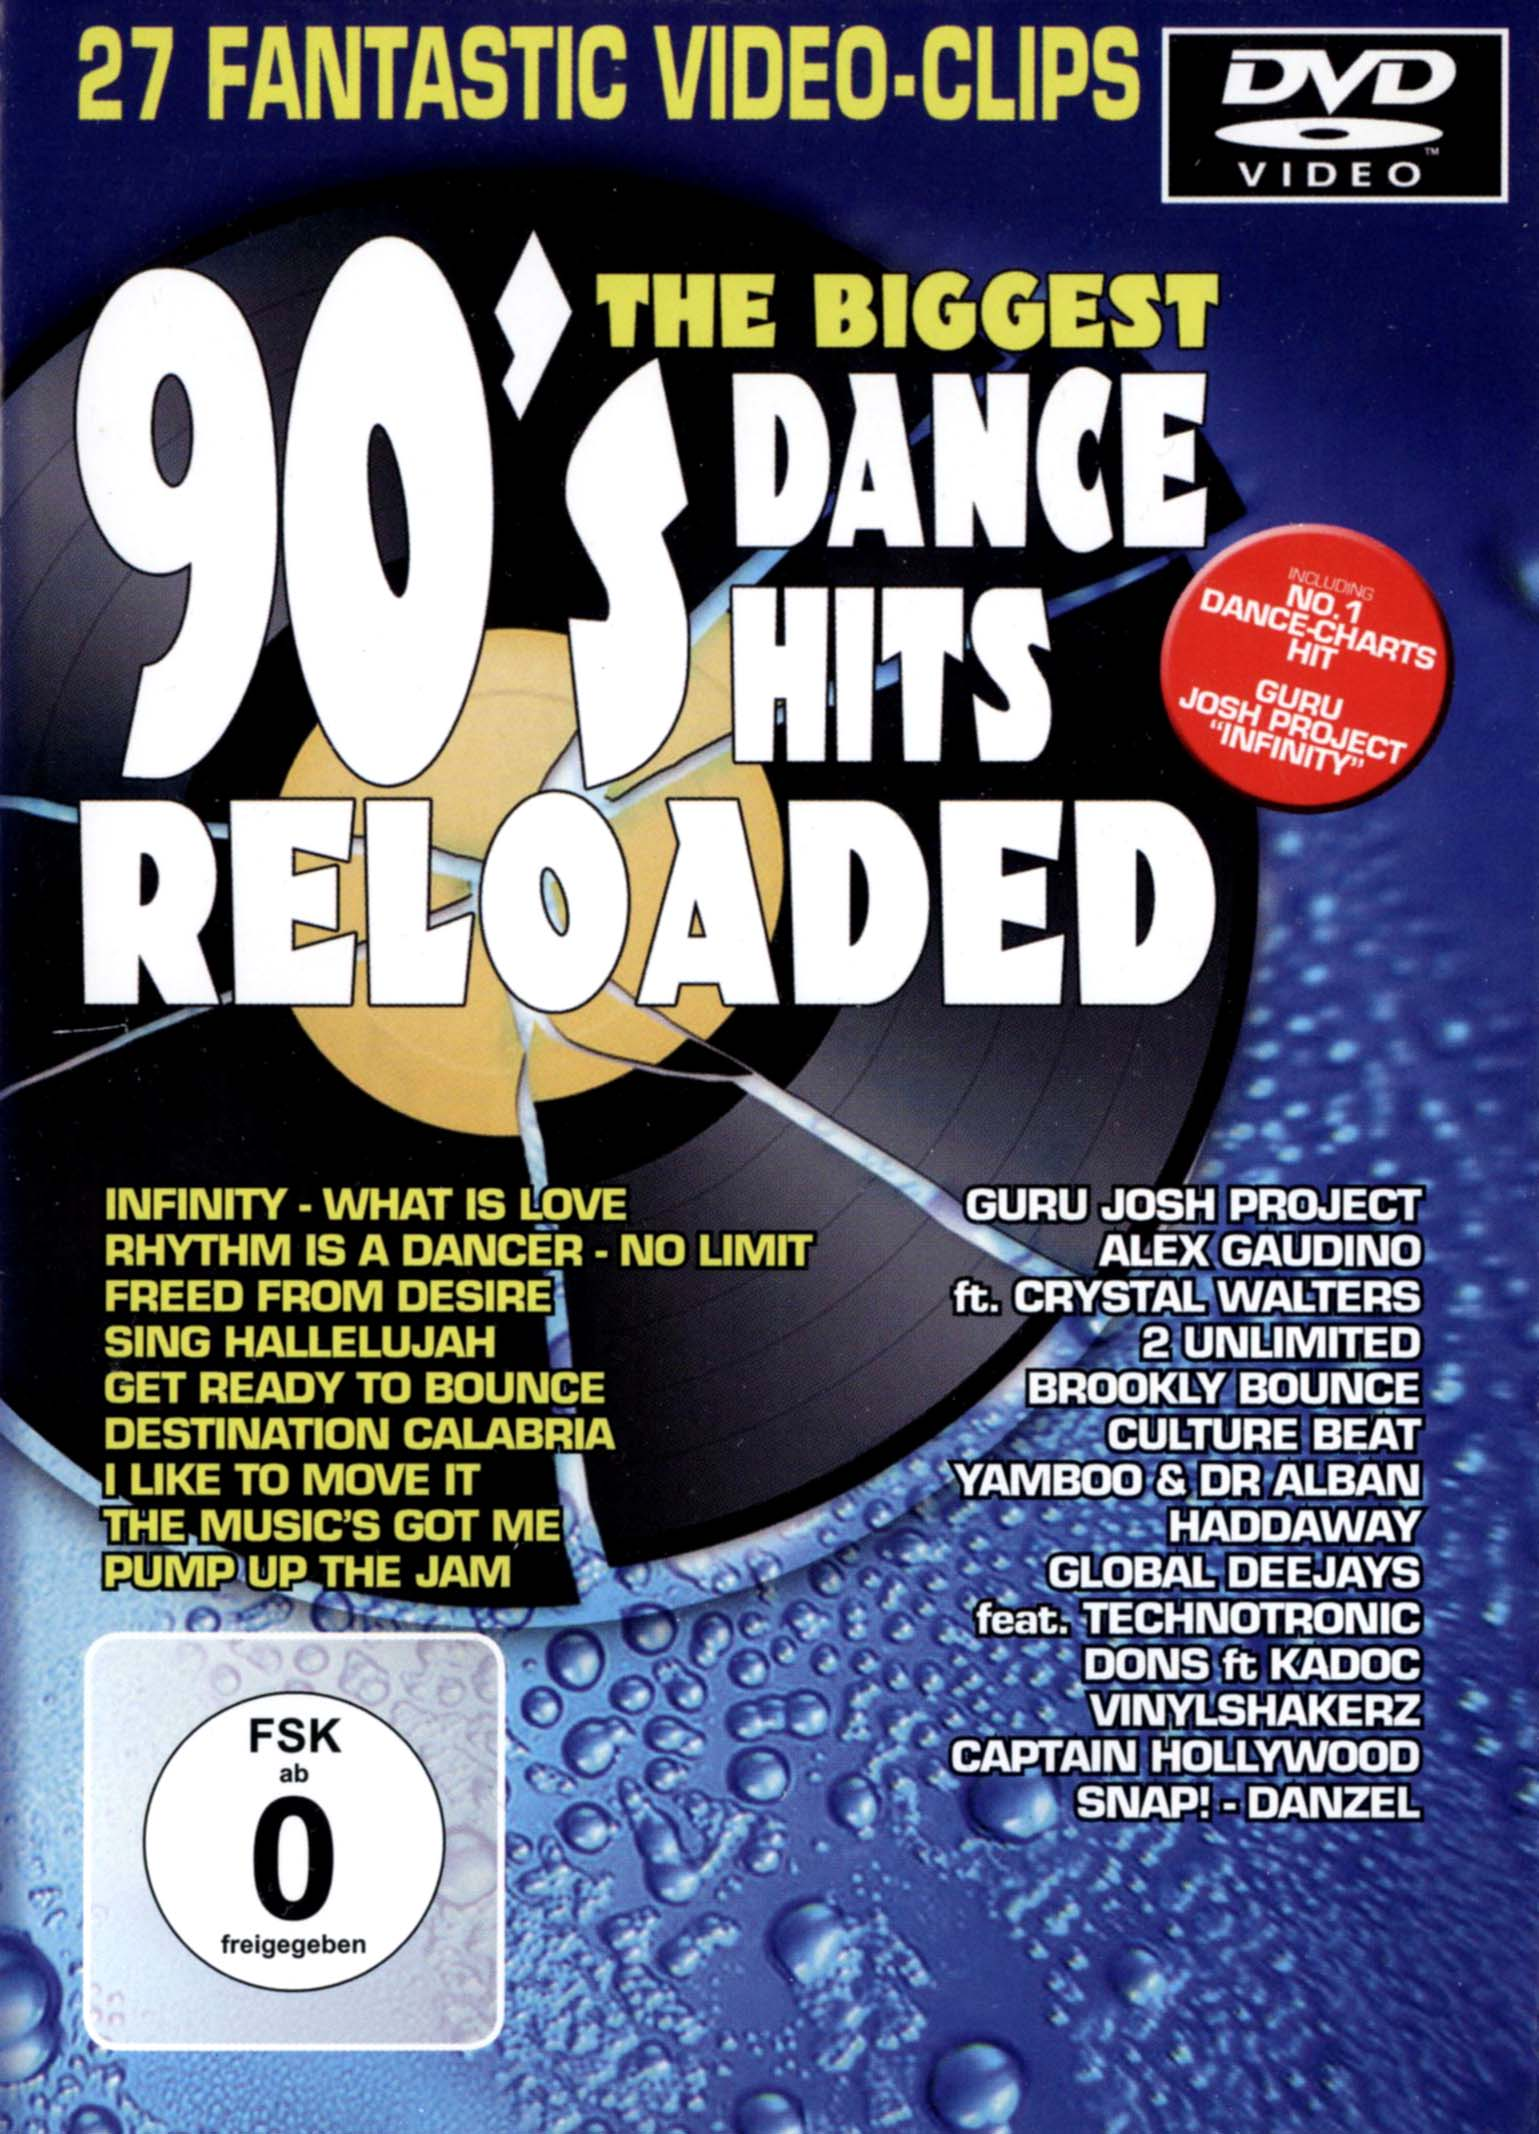 The Biggest 90's Dance Hits Reloaded